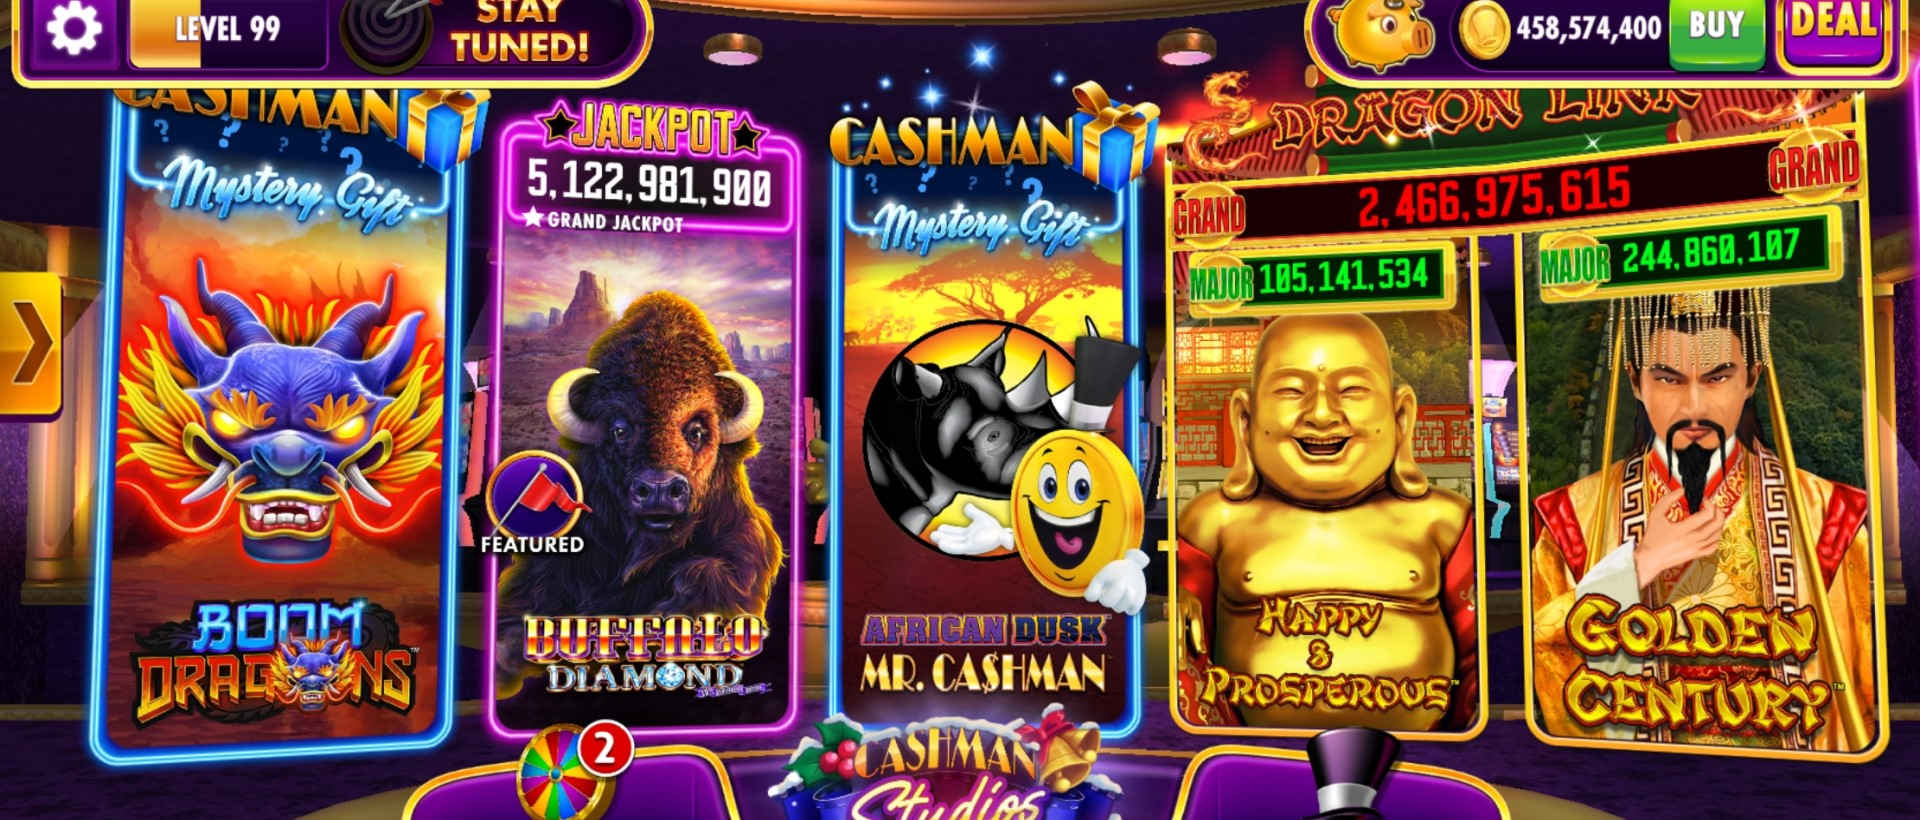 Download Cashman Casino: Free Slot Games on PC with NoxPlayer-Appcenter